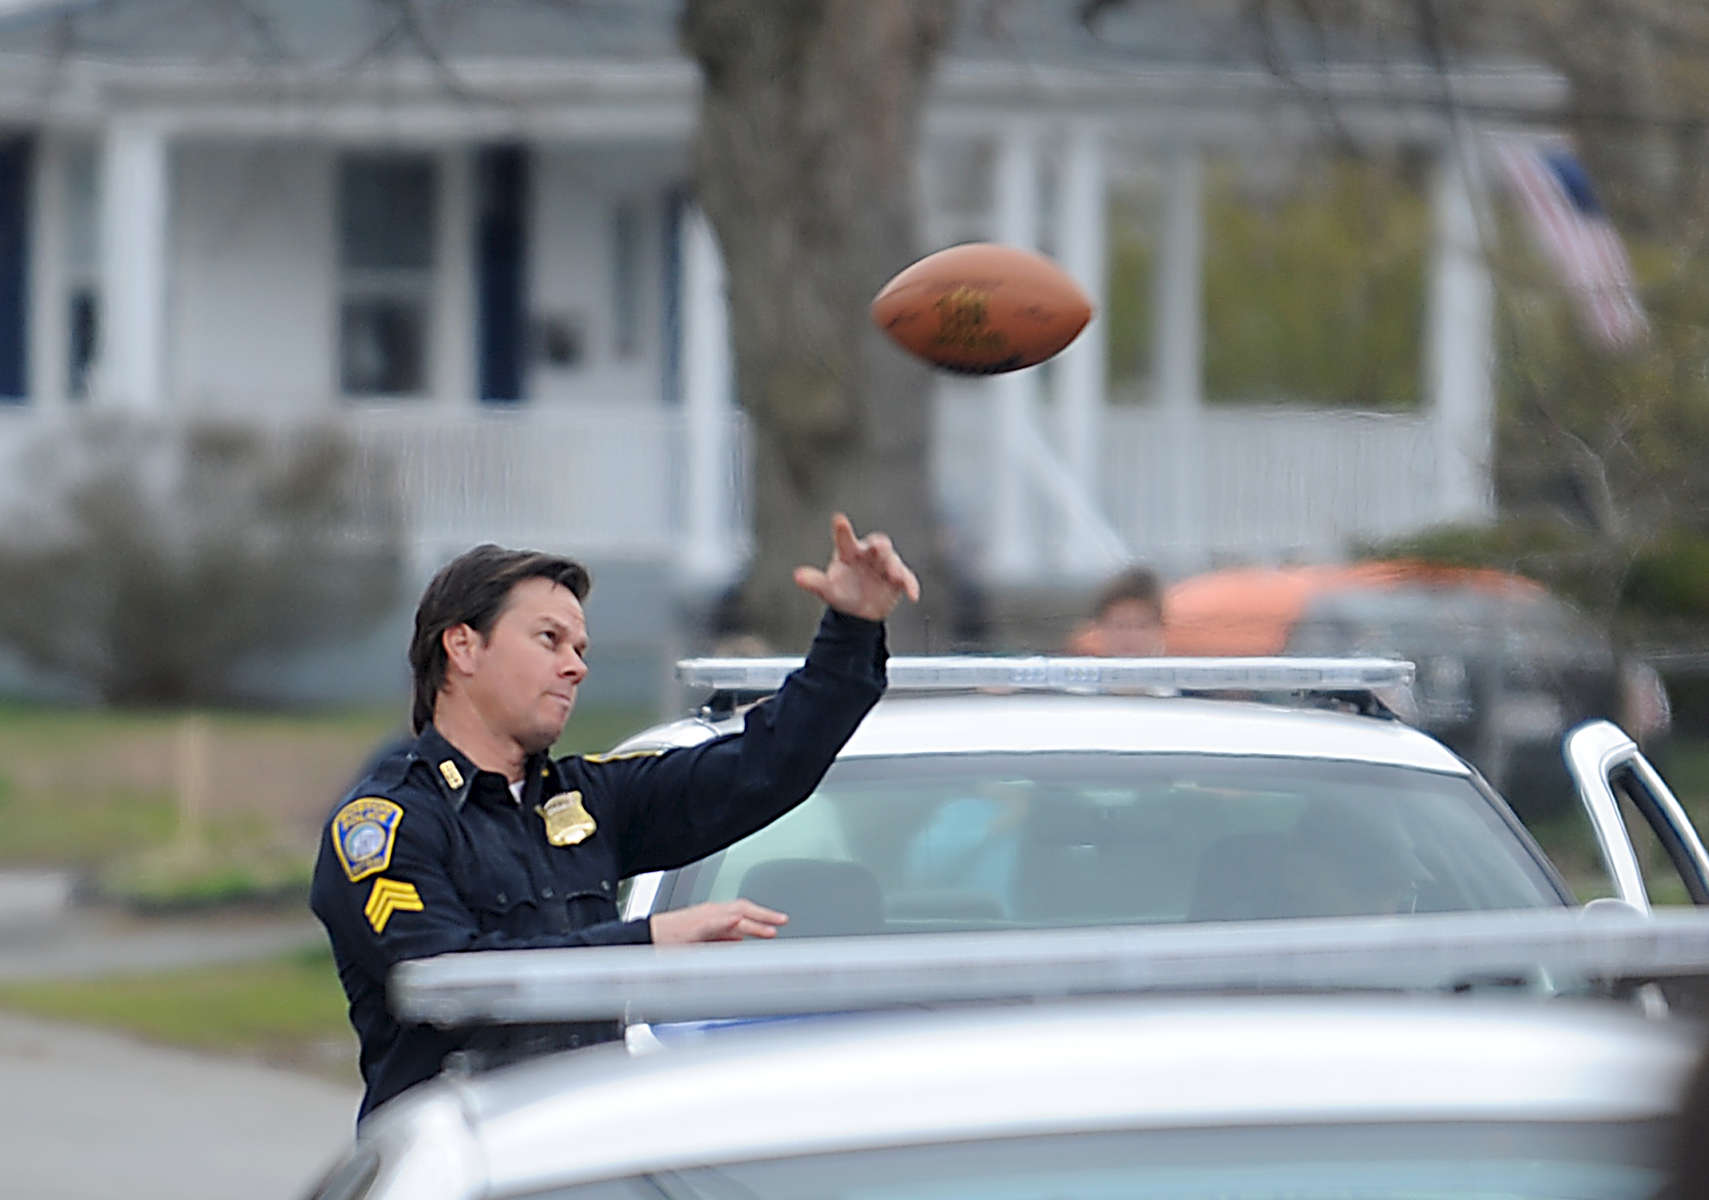 4/19/16-- FRAMINGHAM-- Actor Mark Wahlberg throws a football  during a break while filming the movie Patriot Day on Harrison Street in Framingham Tuesday.  Wahlberg plays Boston Police Sgt. Tommy Saunders in the story of Boston Police Commissioner Ed Davis's actions in the events leading up to the 2013 Boston Marathon bombing and the aftermath, which includes the city-wide manhunt to find the terrorists behind it.Daily News and Wicked Local Staff Photo/Art Illman